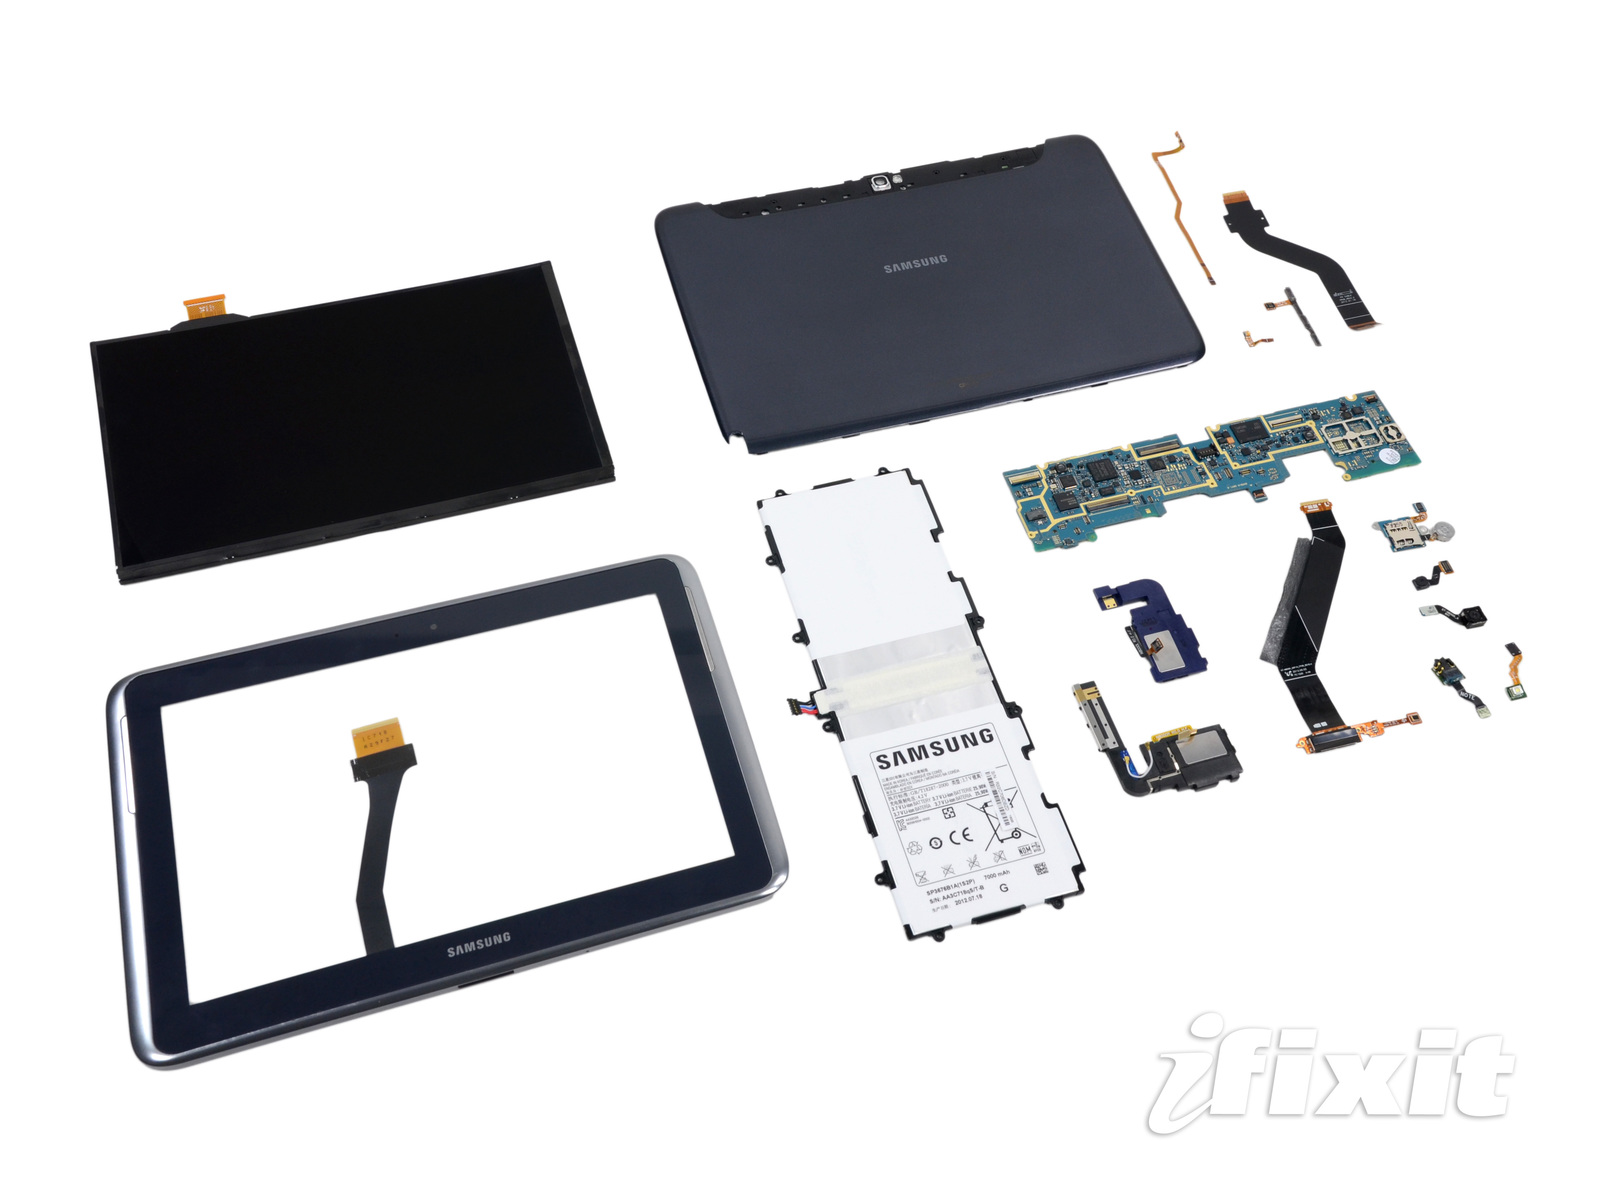 Ifixit tears down the Samsung Galaxy Note 10.1, gives it a 8 out of 10 for reparability